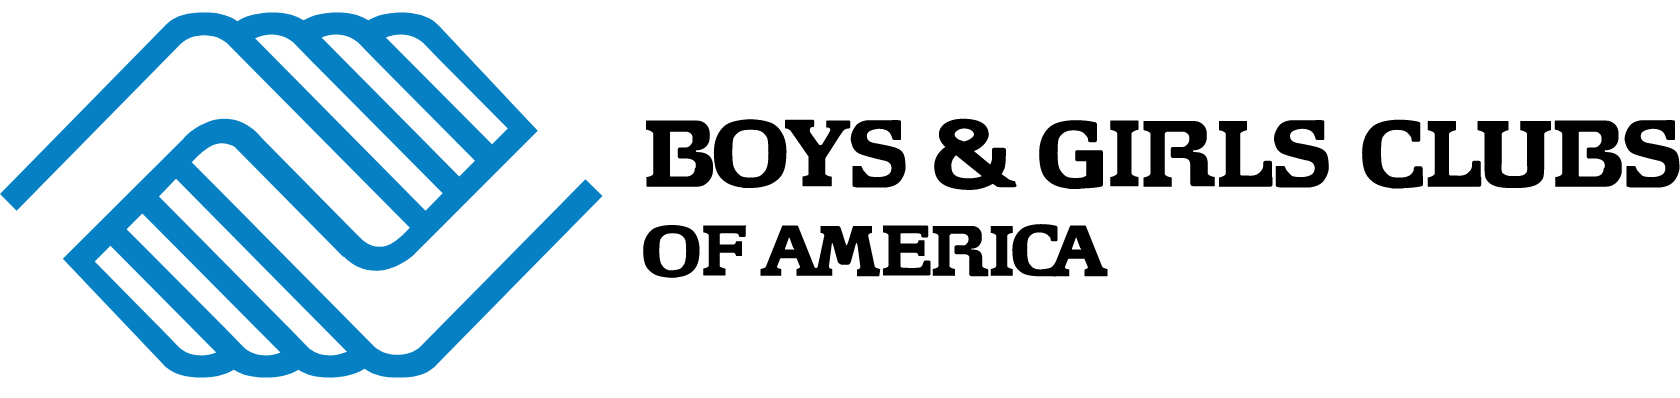 Boys & Girls of America logo